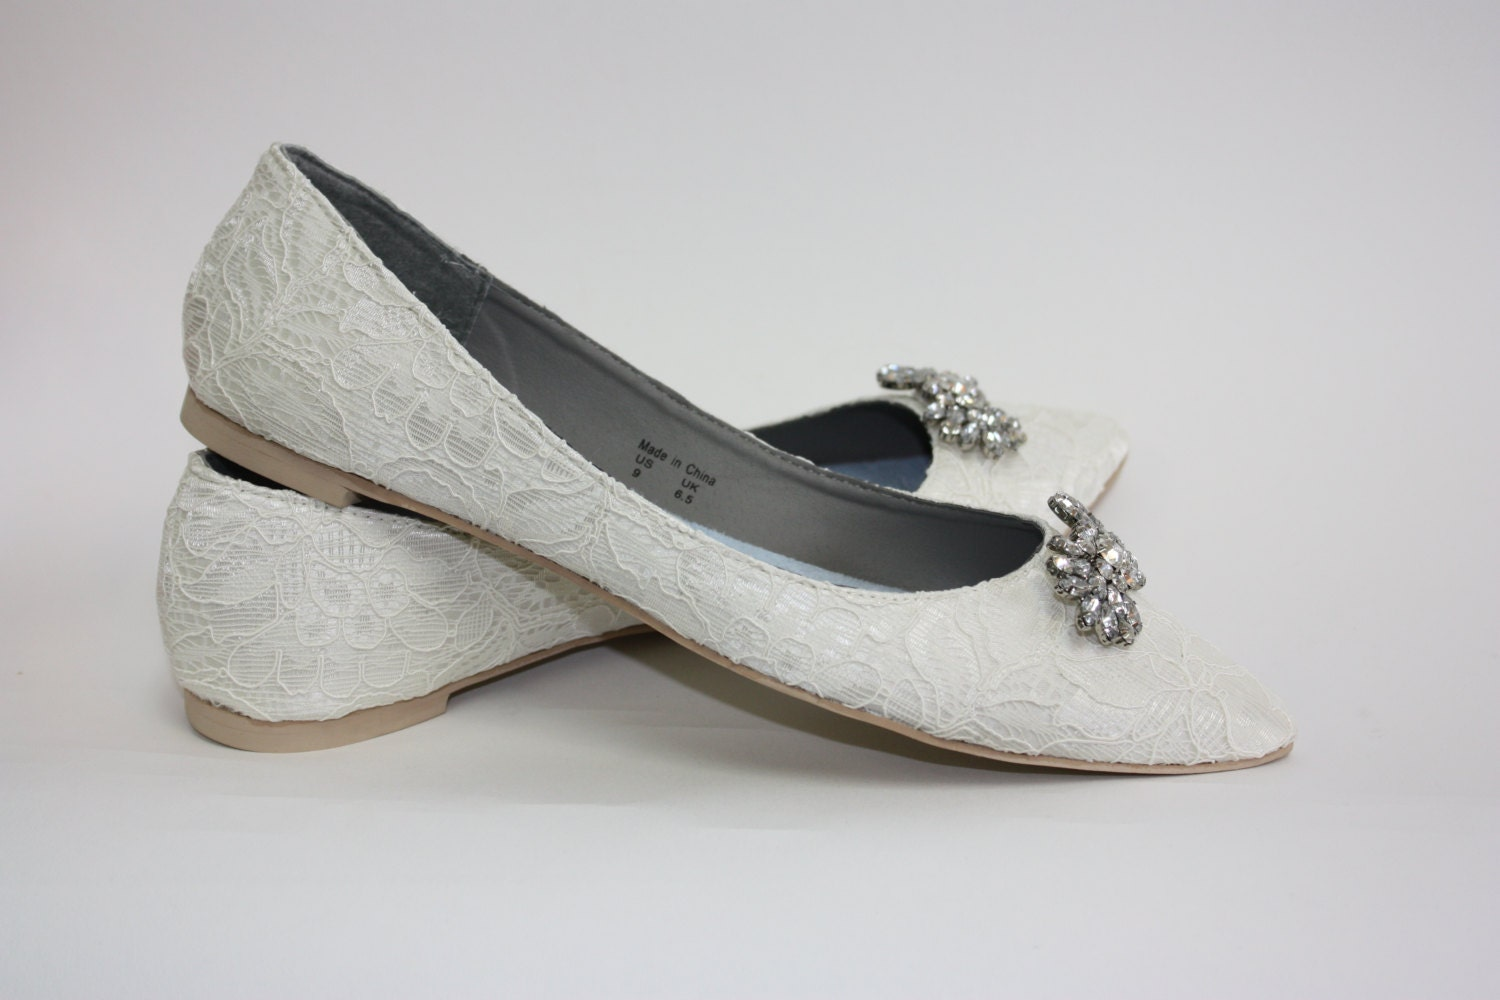 50+ stunning pairs of wedding shoes for the bride who wants to make a statement with her footwear. 55 chic looks for the aisle–from flats to statement stilettos. Embroidered lace and satin.